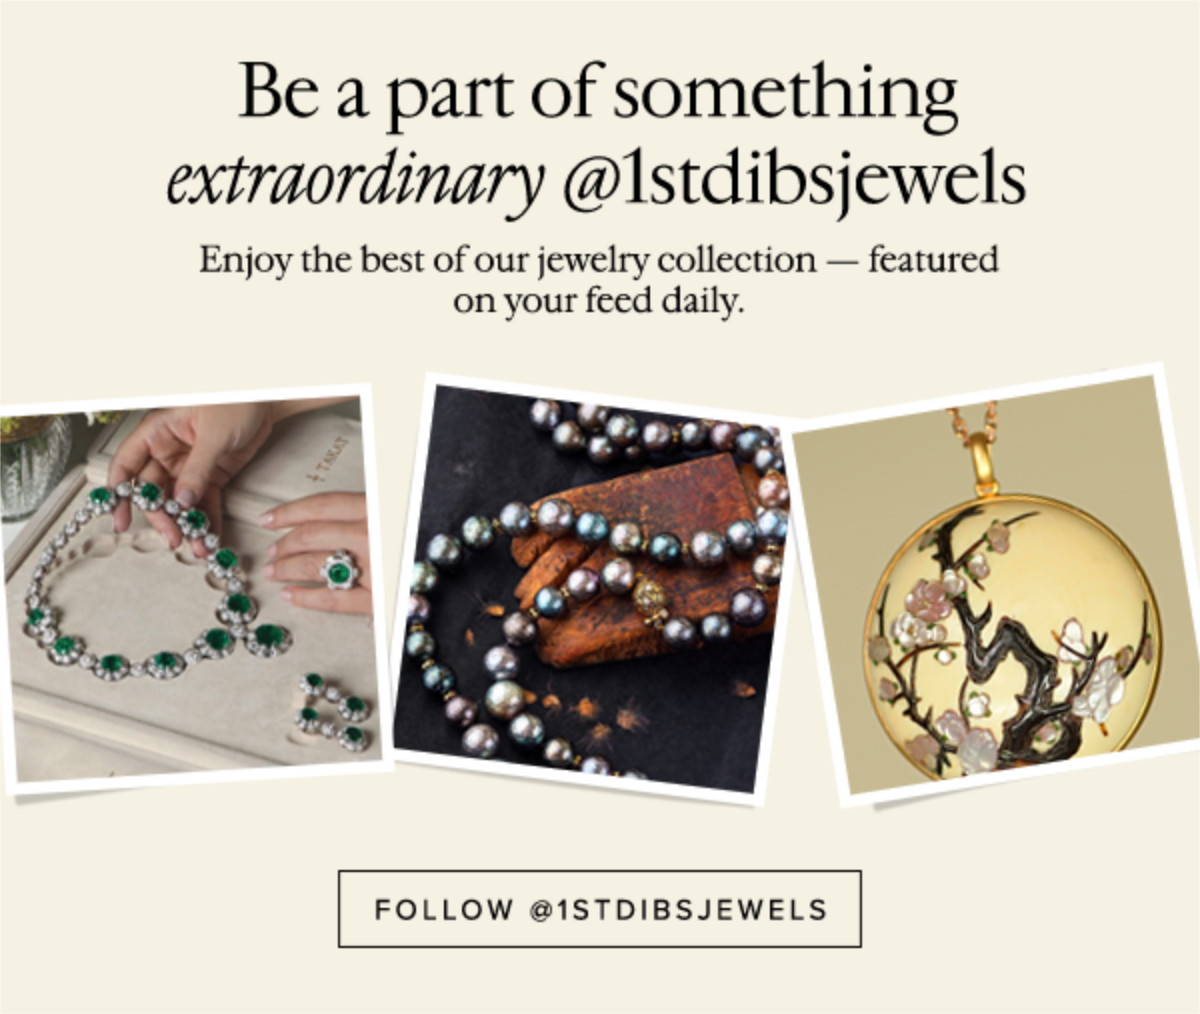 Be a part of something extraordinary @1stdibsjewels